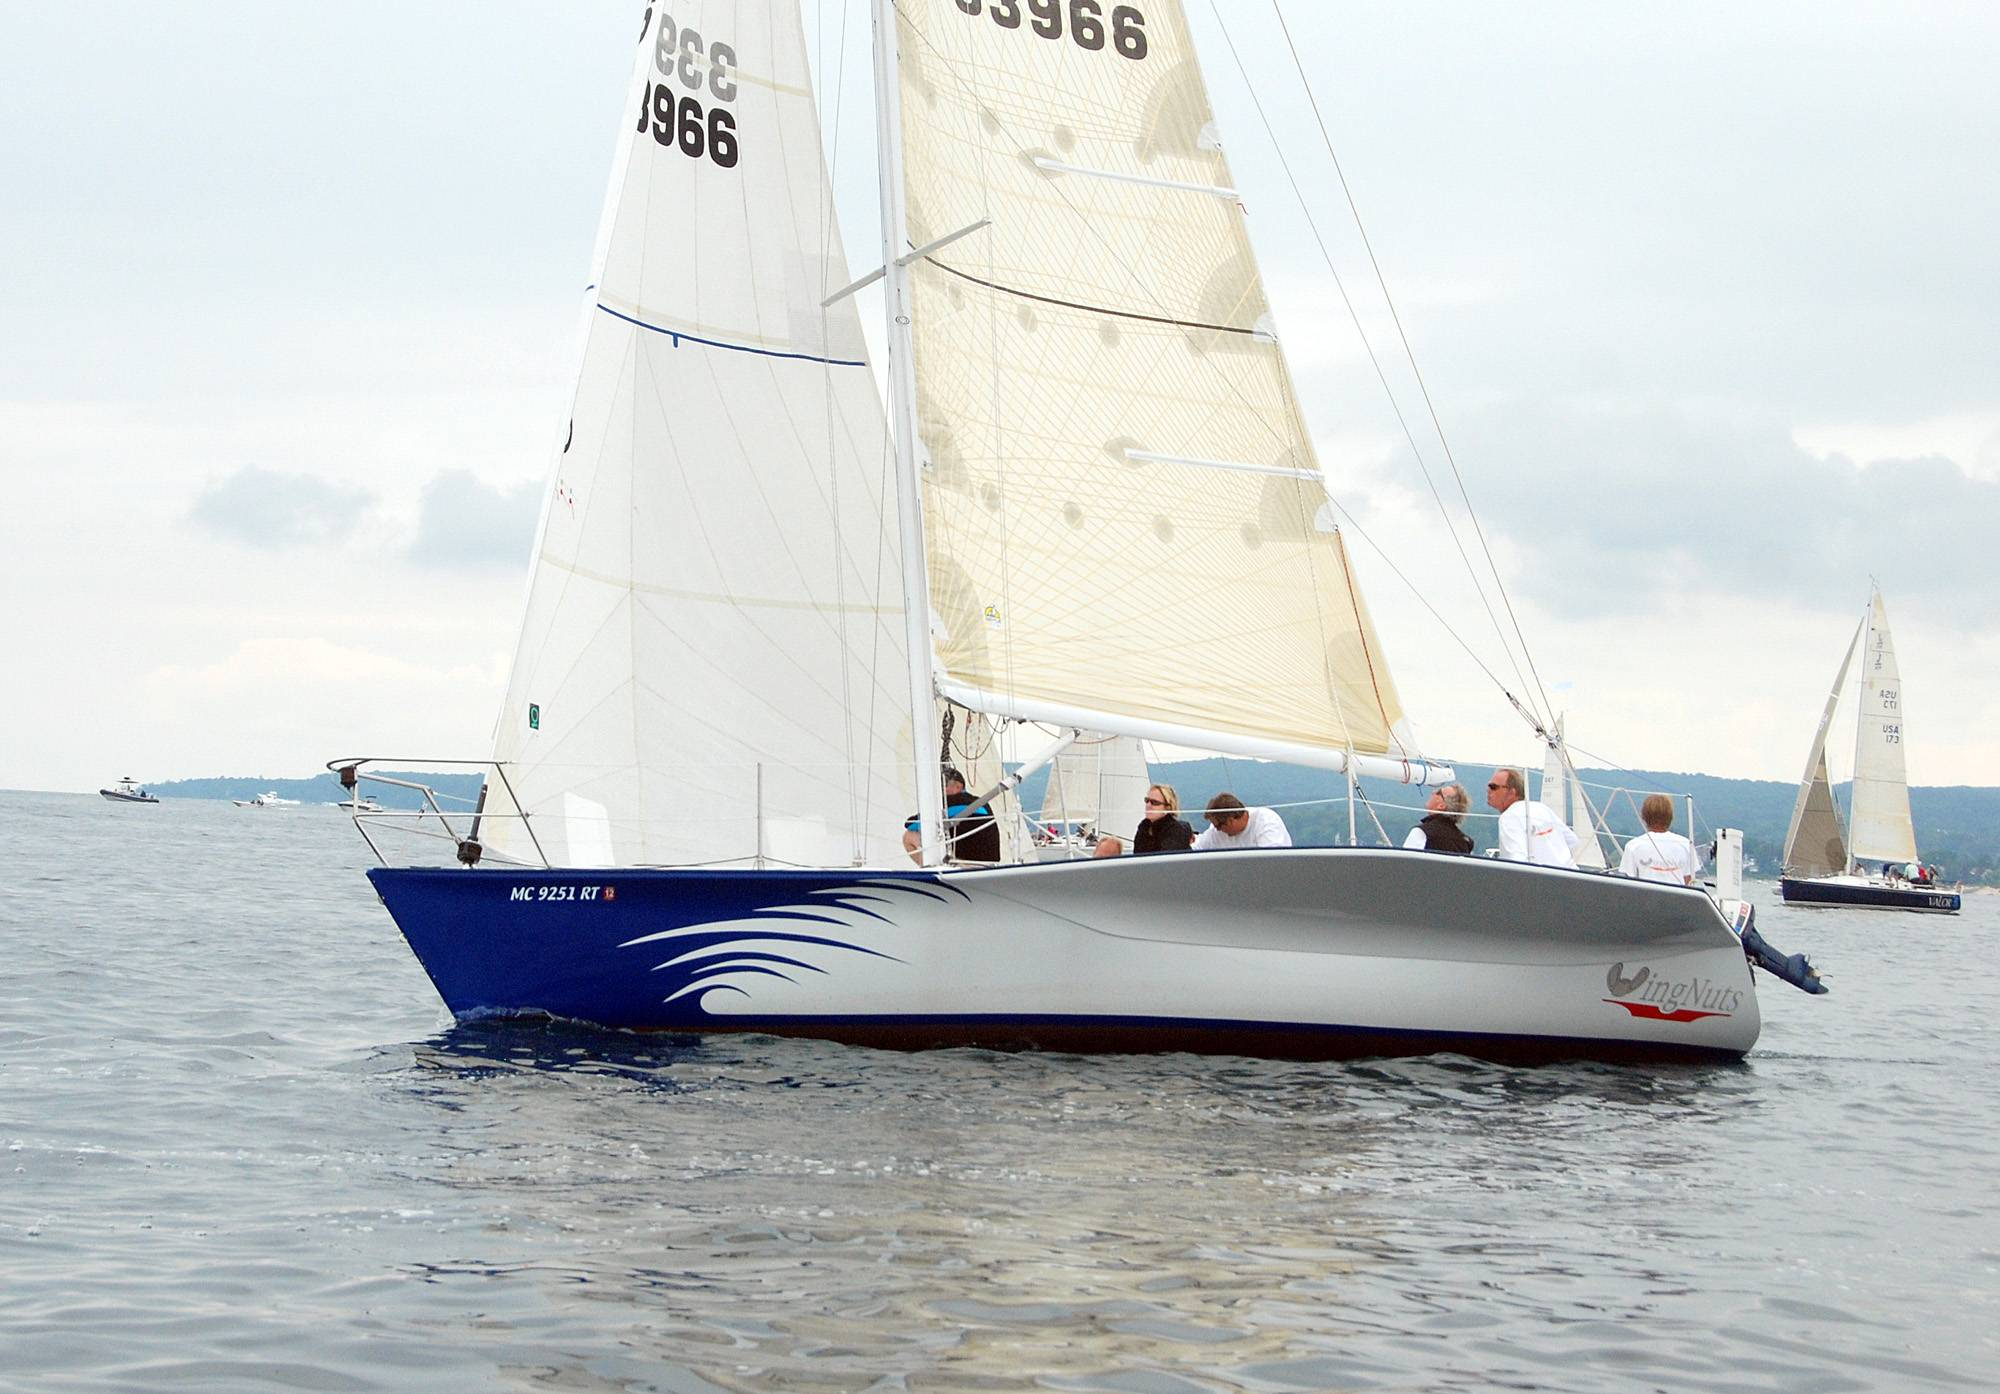 The sailboat WingNuts, shown here in July 2010, capsized in Lake Michigan early Monday during the annual Chicago-to-Mackinac race, the Coast Guard said.